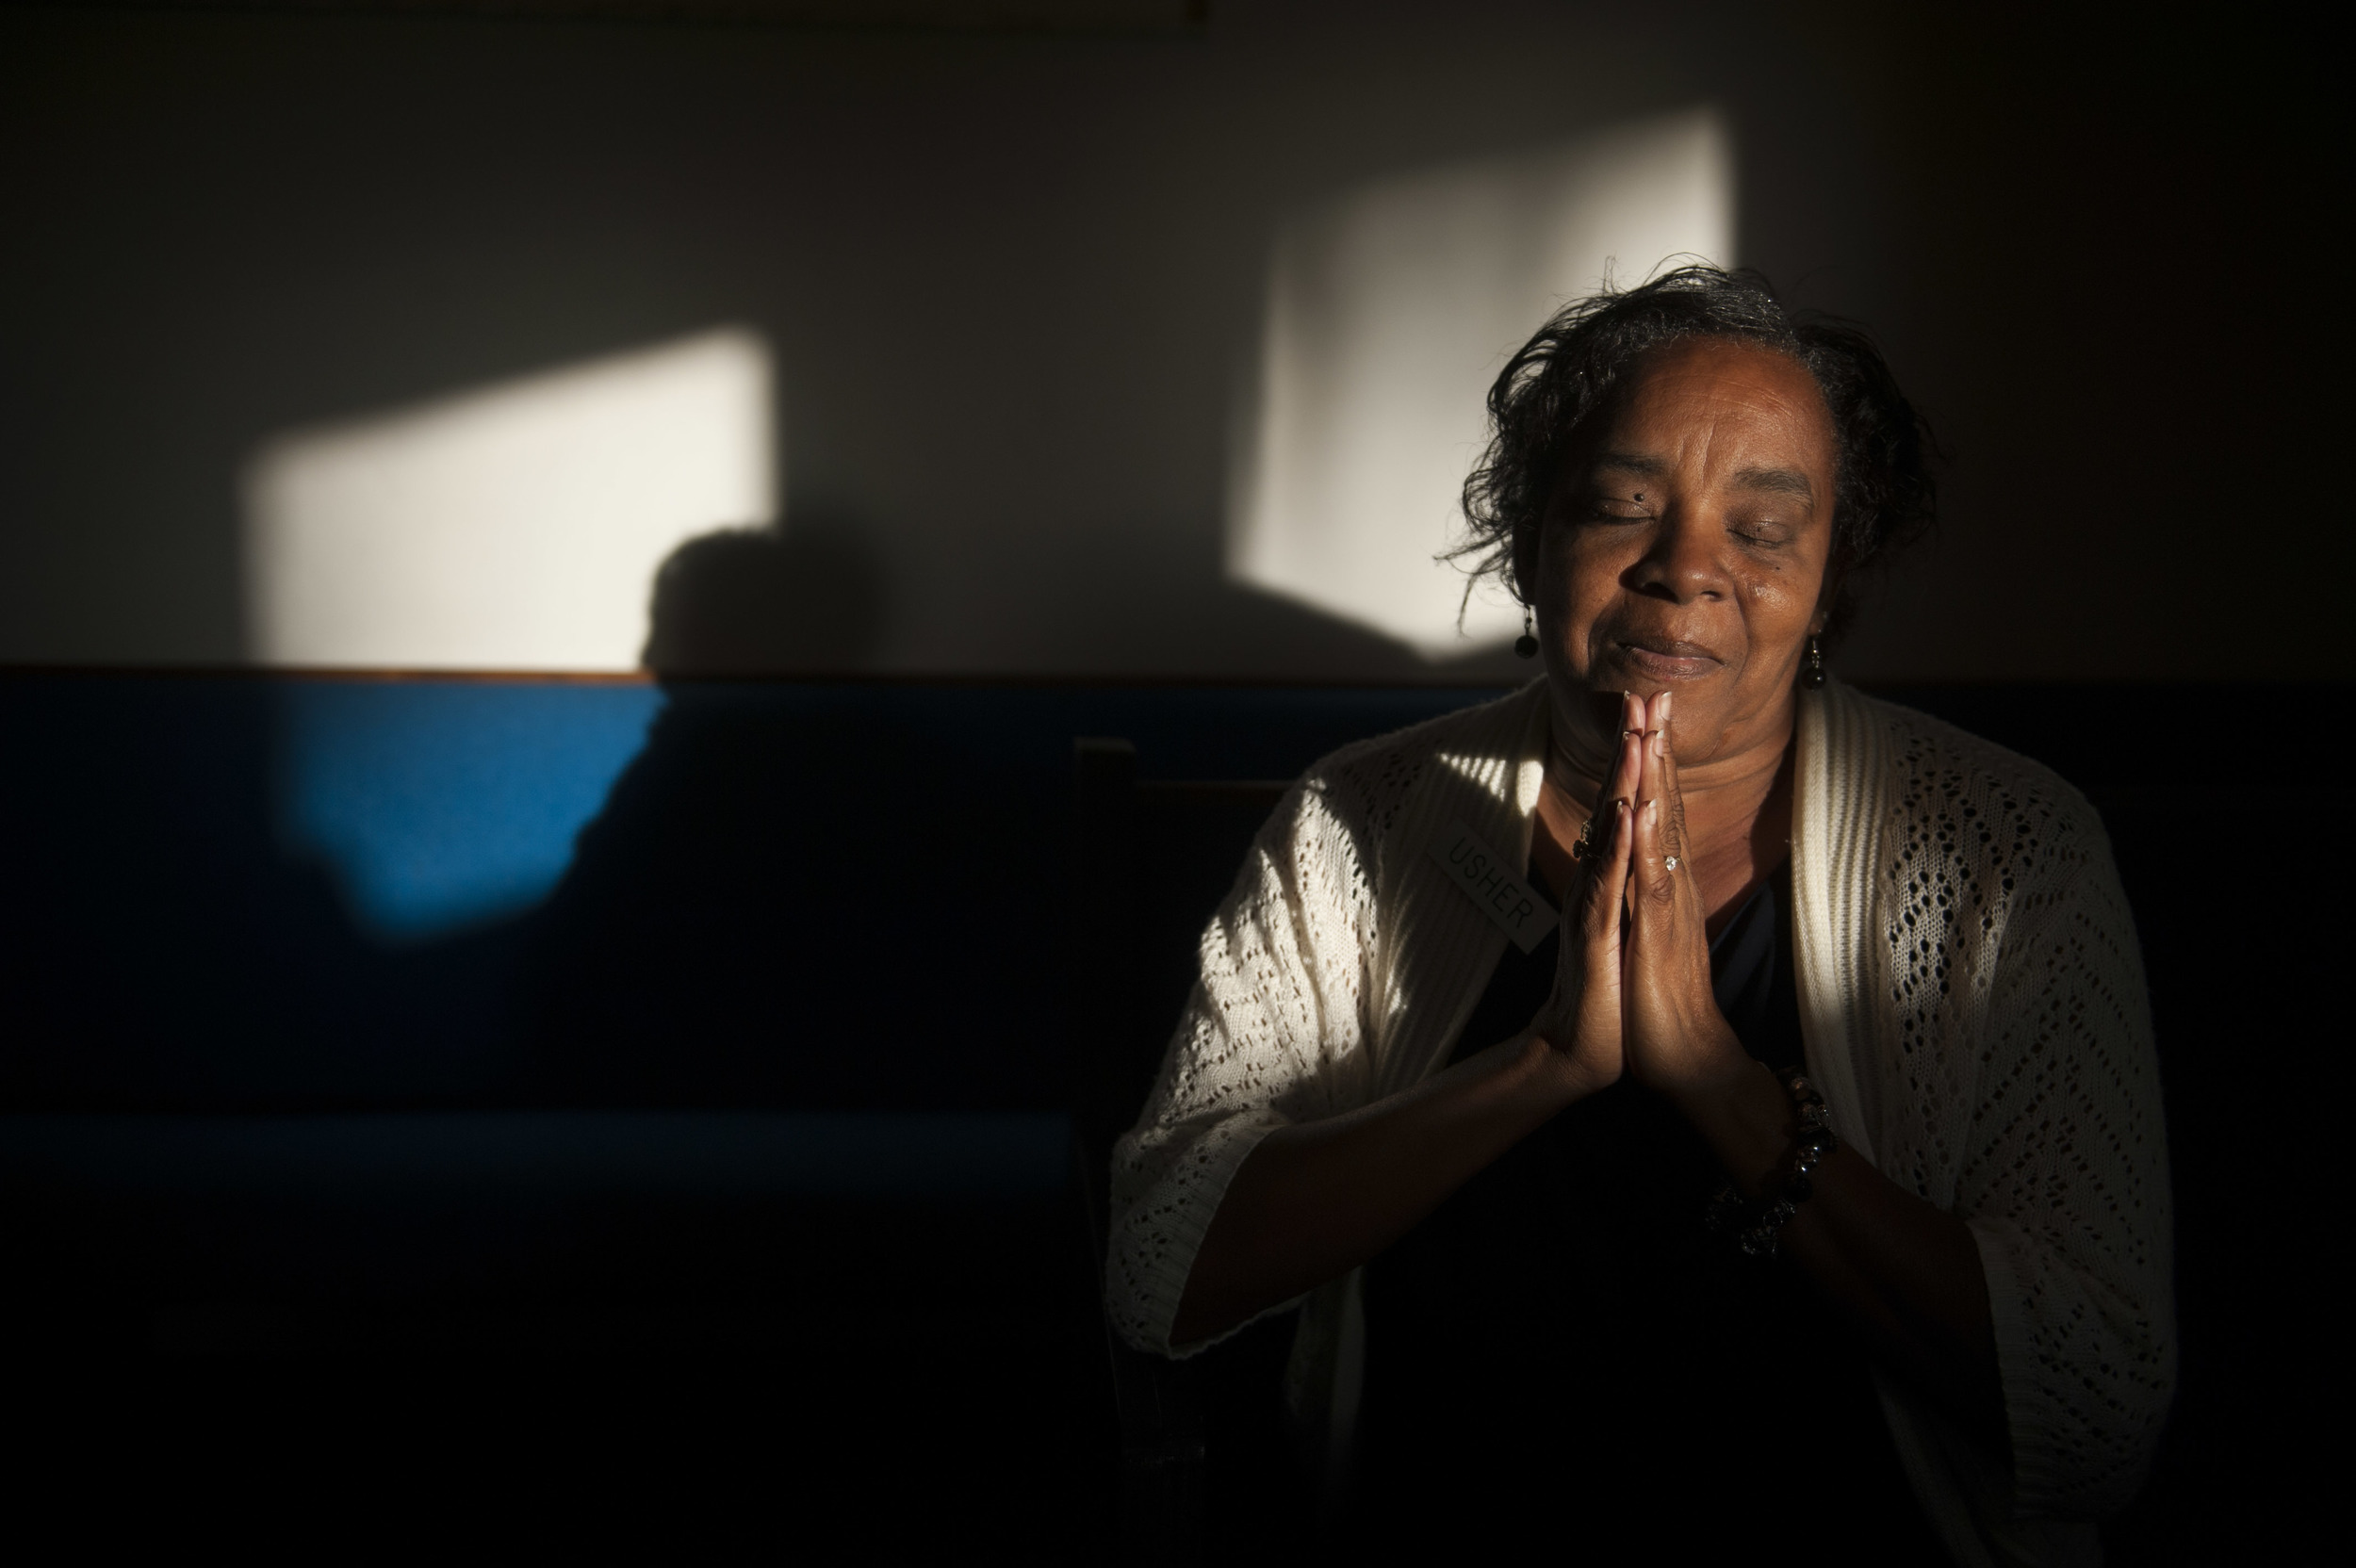 Deborah Barr, 56, sits for a portrait after service at the Israel Bethel P.B. Church in Tampa on Sunday, November 17, 2013. Barr, who is unable to read, carries a bible in her purse and is hoping to one day be able to read it. Her story is a part of the Holiday Hopes series in which the Tampa Bay Times features the stories of those in need during the holiday season. Readers are encouraged to reach out to the subjects of these stories with support and assistance.    The video, gallery, and story can be found here: http://www.tampabay.com/news/humaninterest/woman-yearns-for-a-simple-holiday-wish-to-learn-to-read-her-bible/2154825